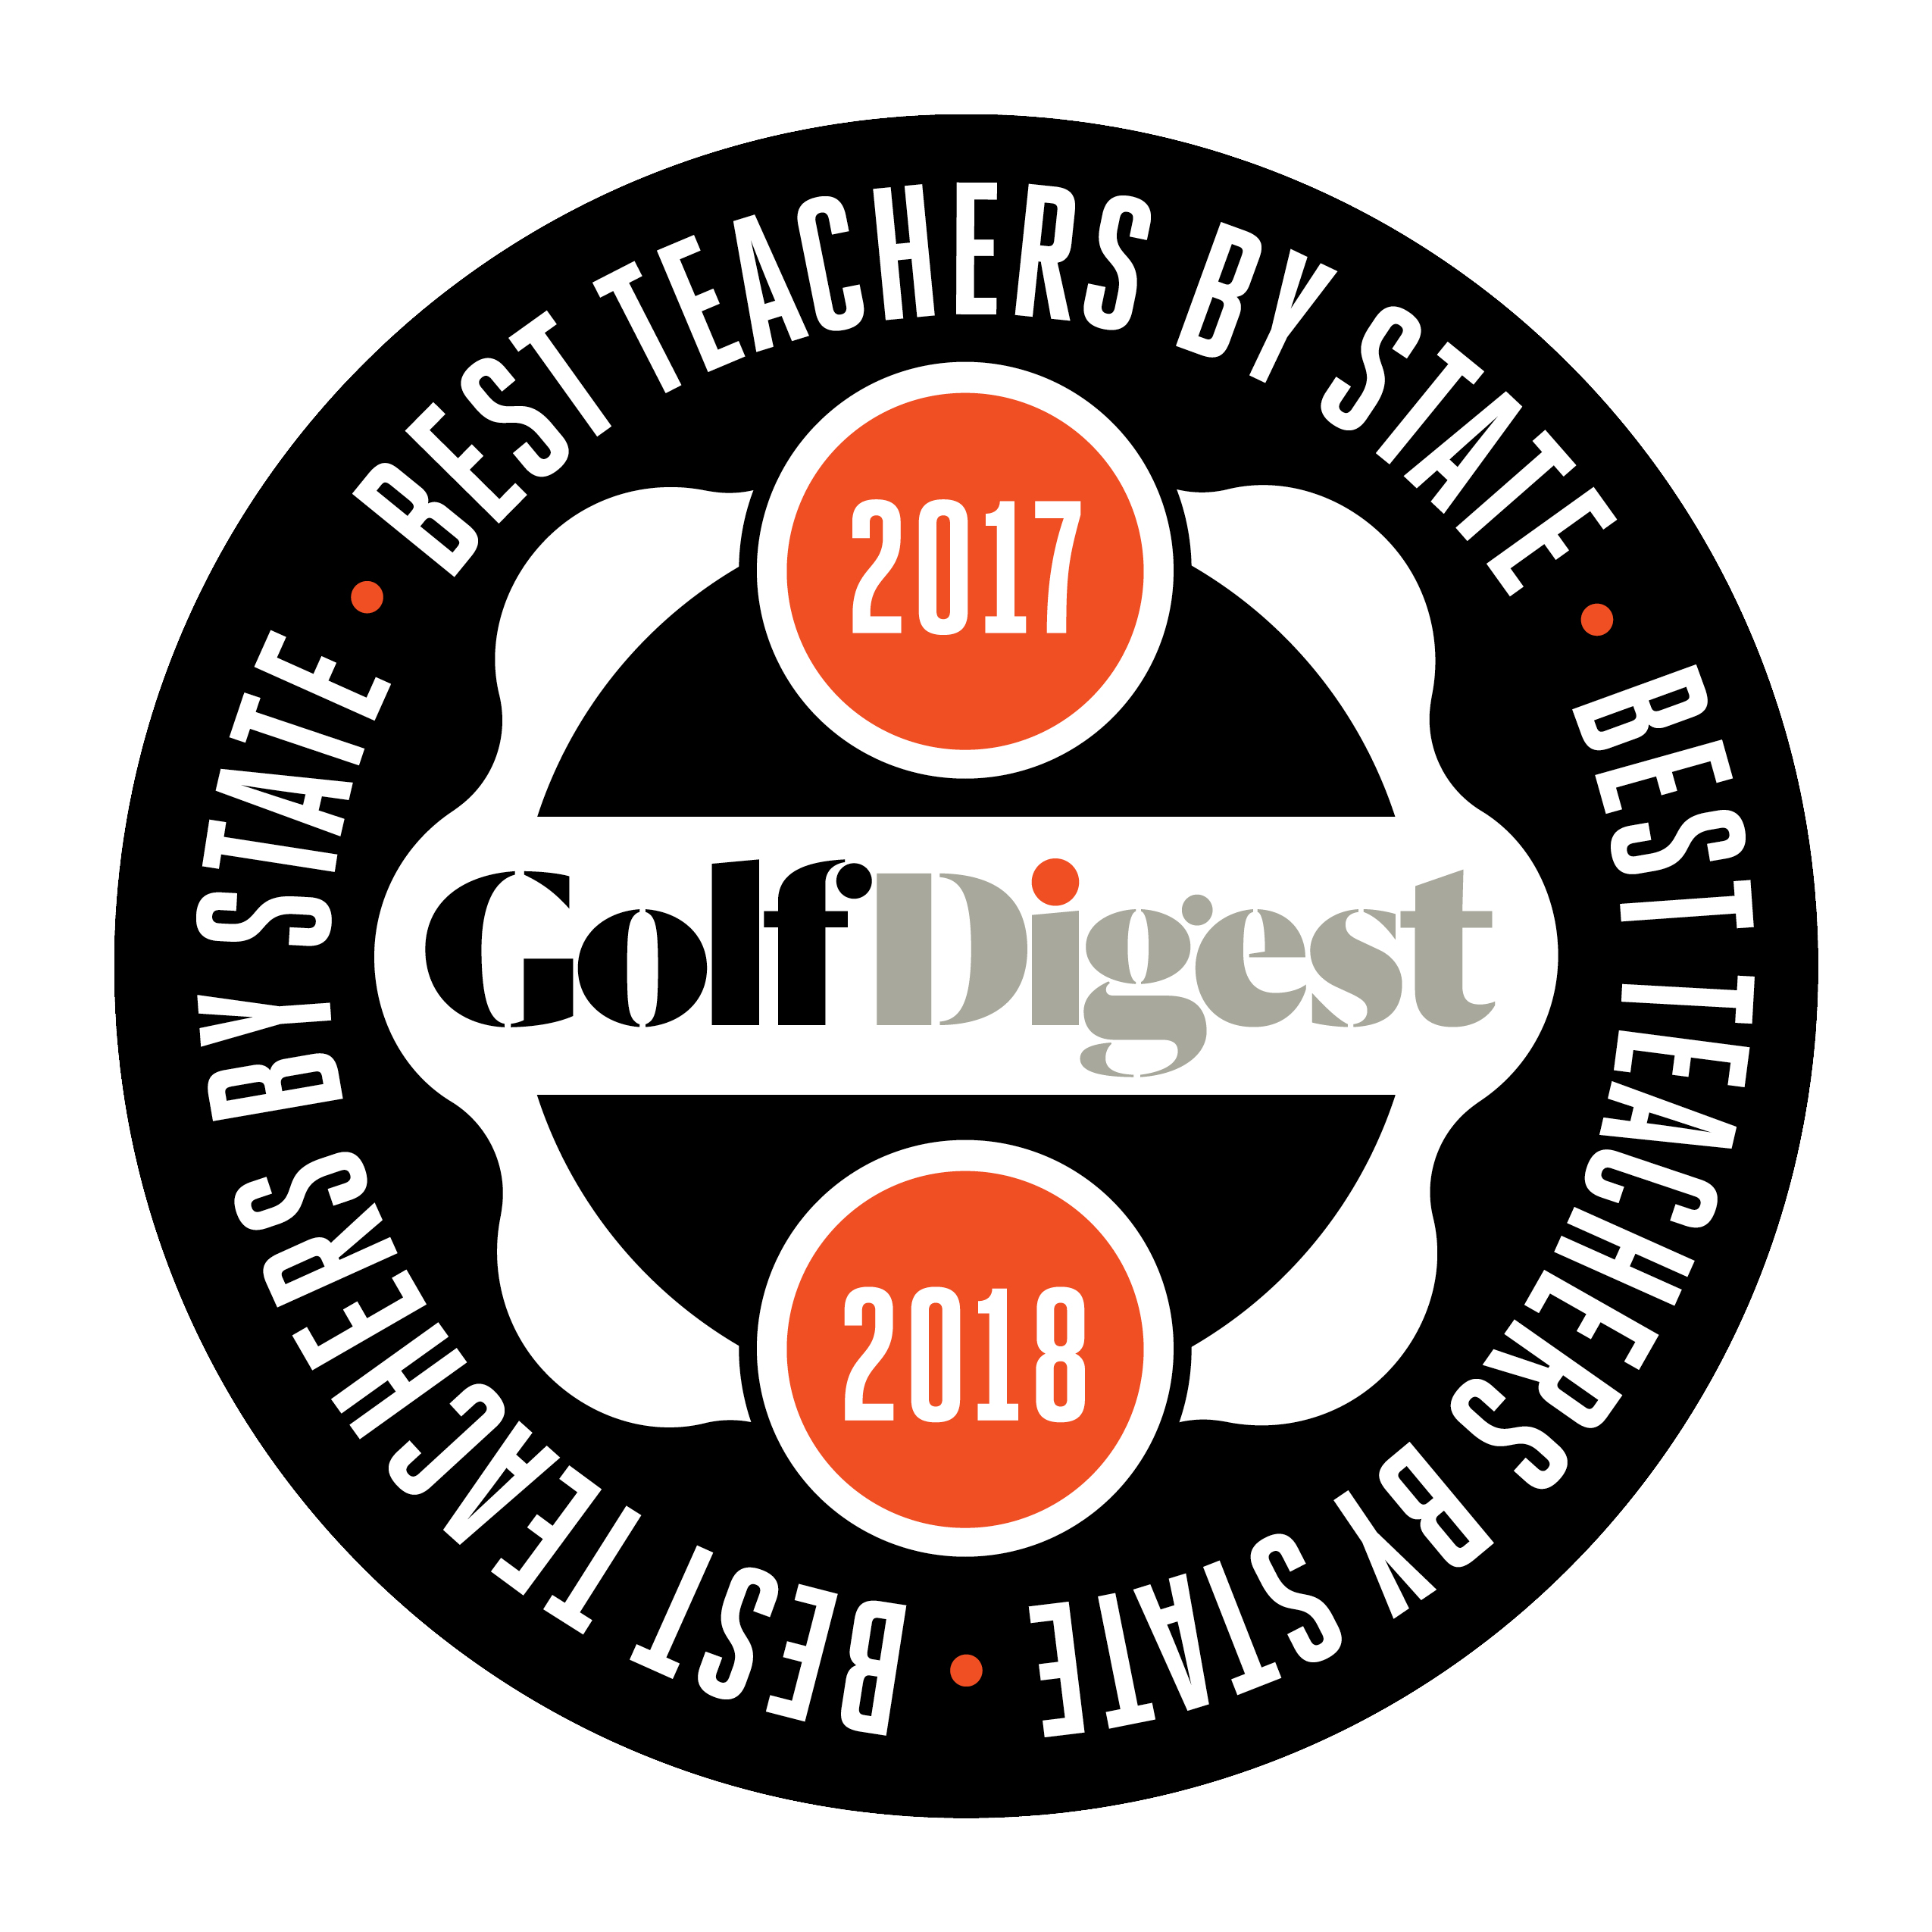 Golf Digest Best Teacher In State-Michigan